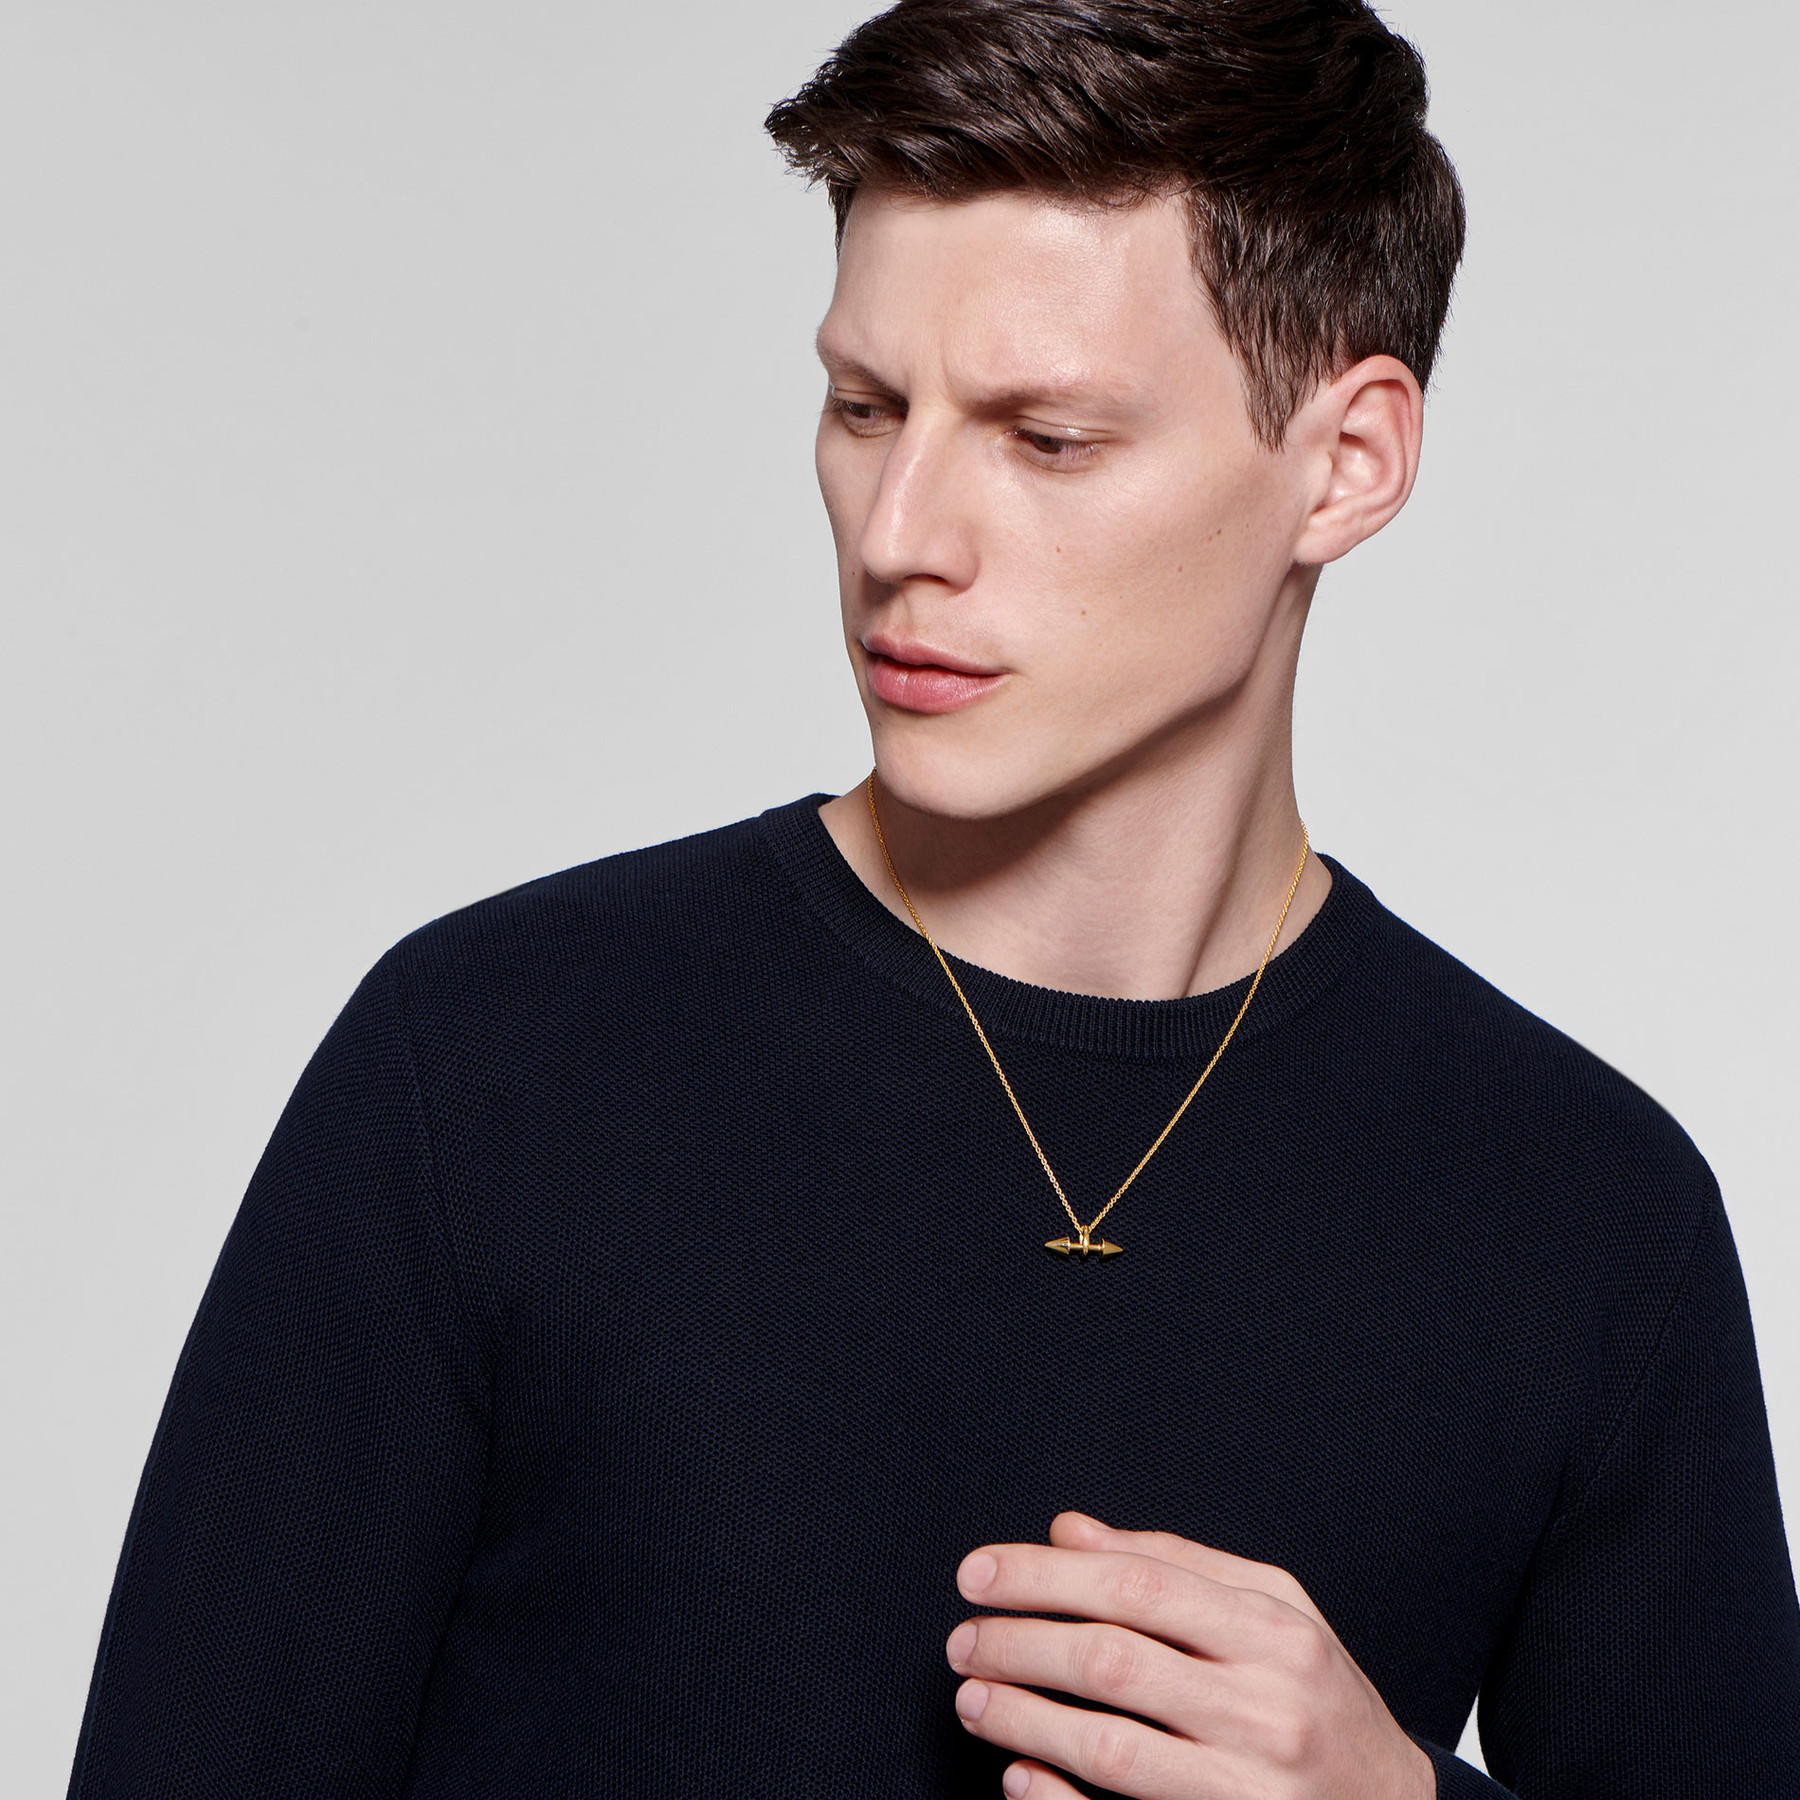 22 karat gold necklace with double-ended cones on attractive male model